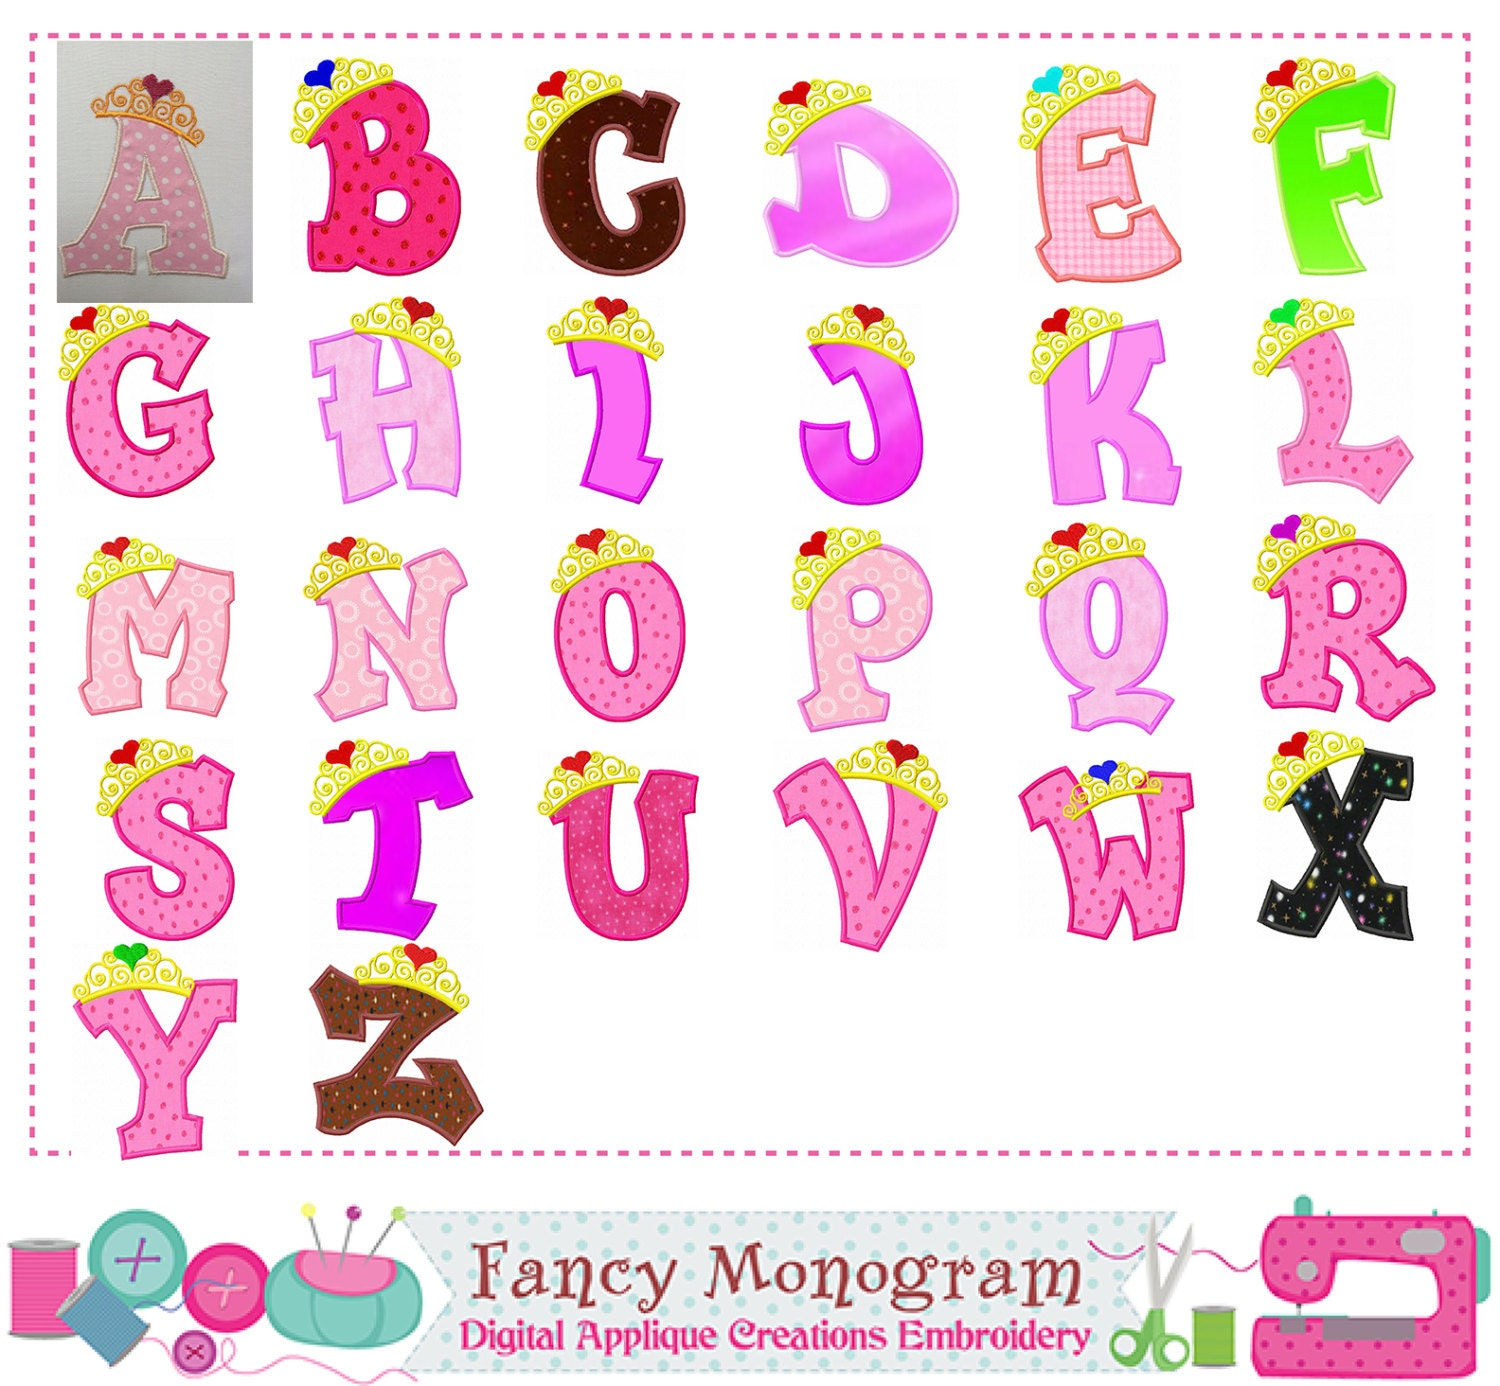 Crown Monograms AppliqueBirthday Letters AppliquePincess Crown